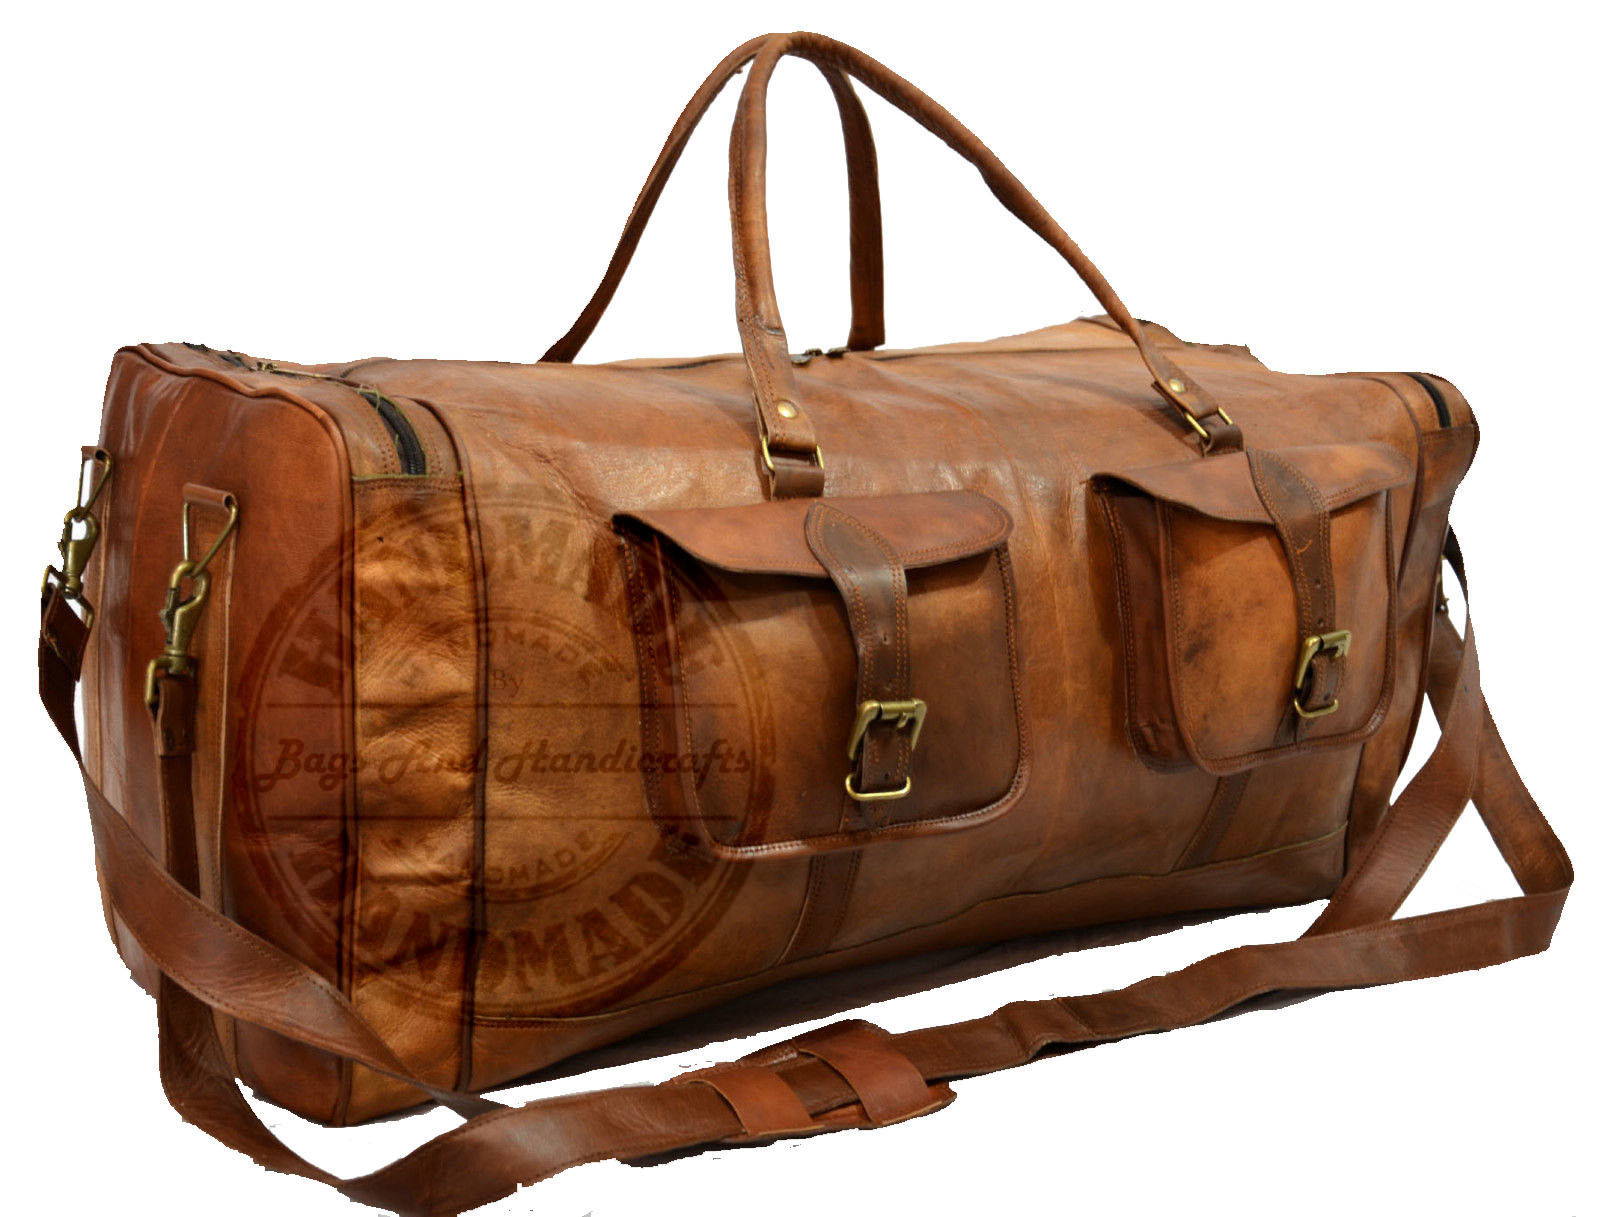 Shop Men's Leather Duffel Bags at eBags - experts in bags and accessories since We offer easy returns, expert advice, and millions of customer reviews.